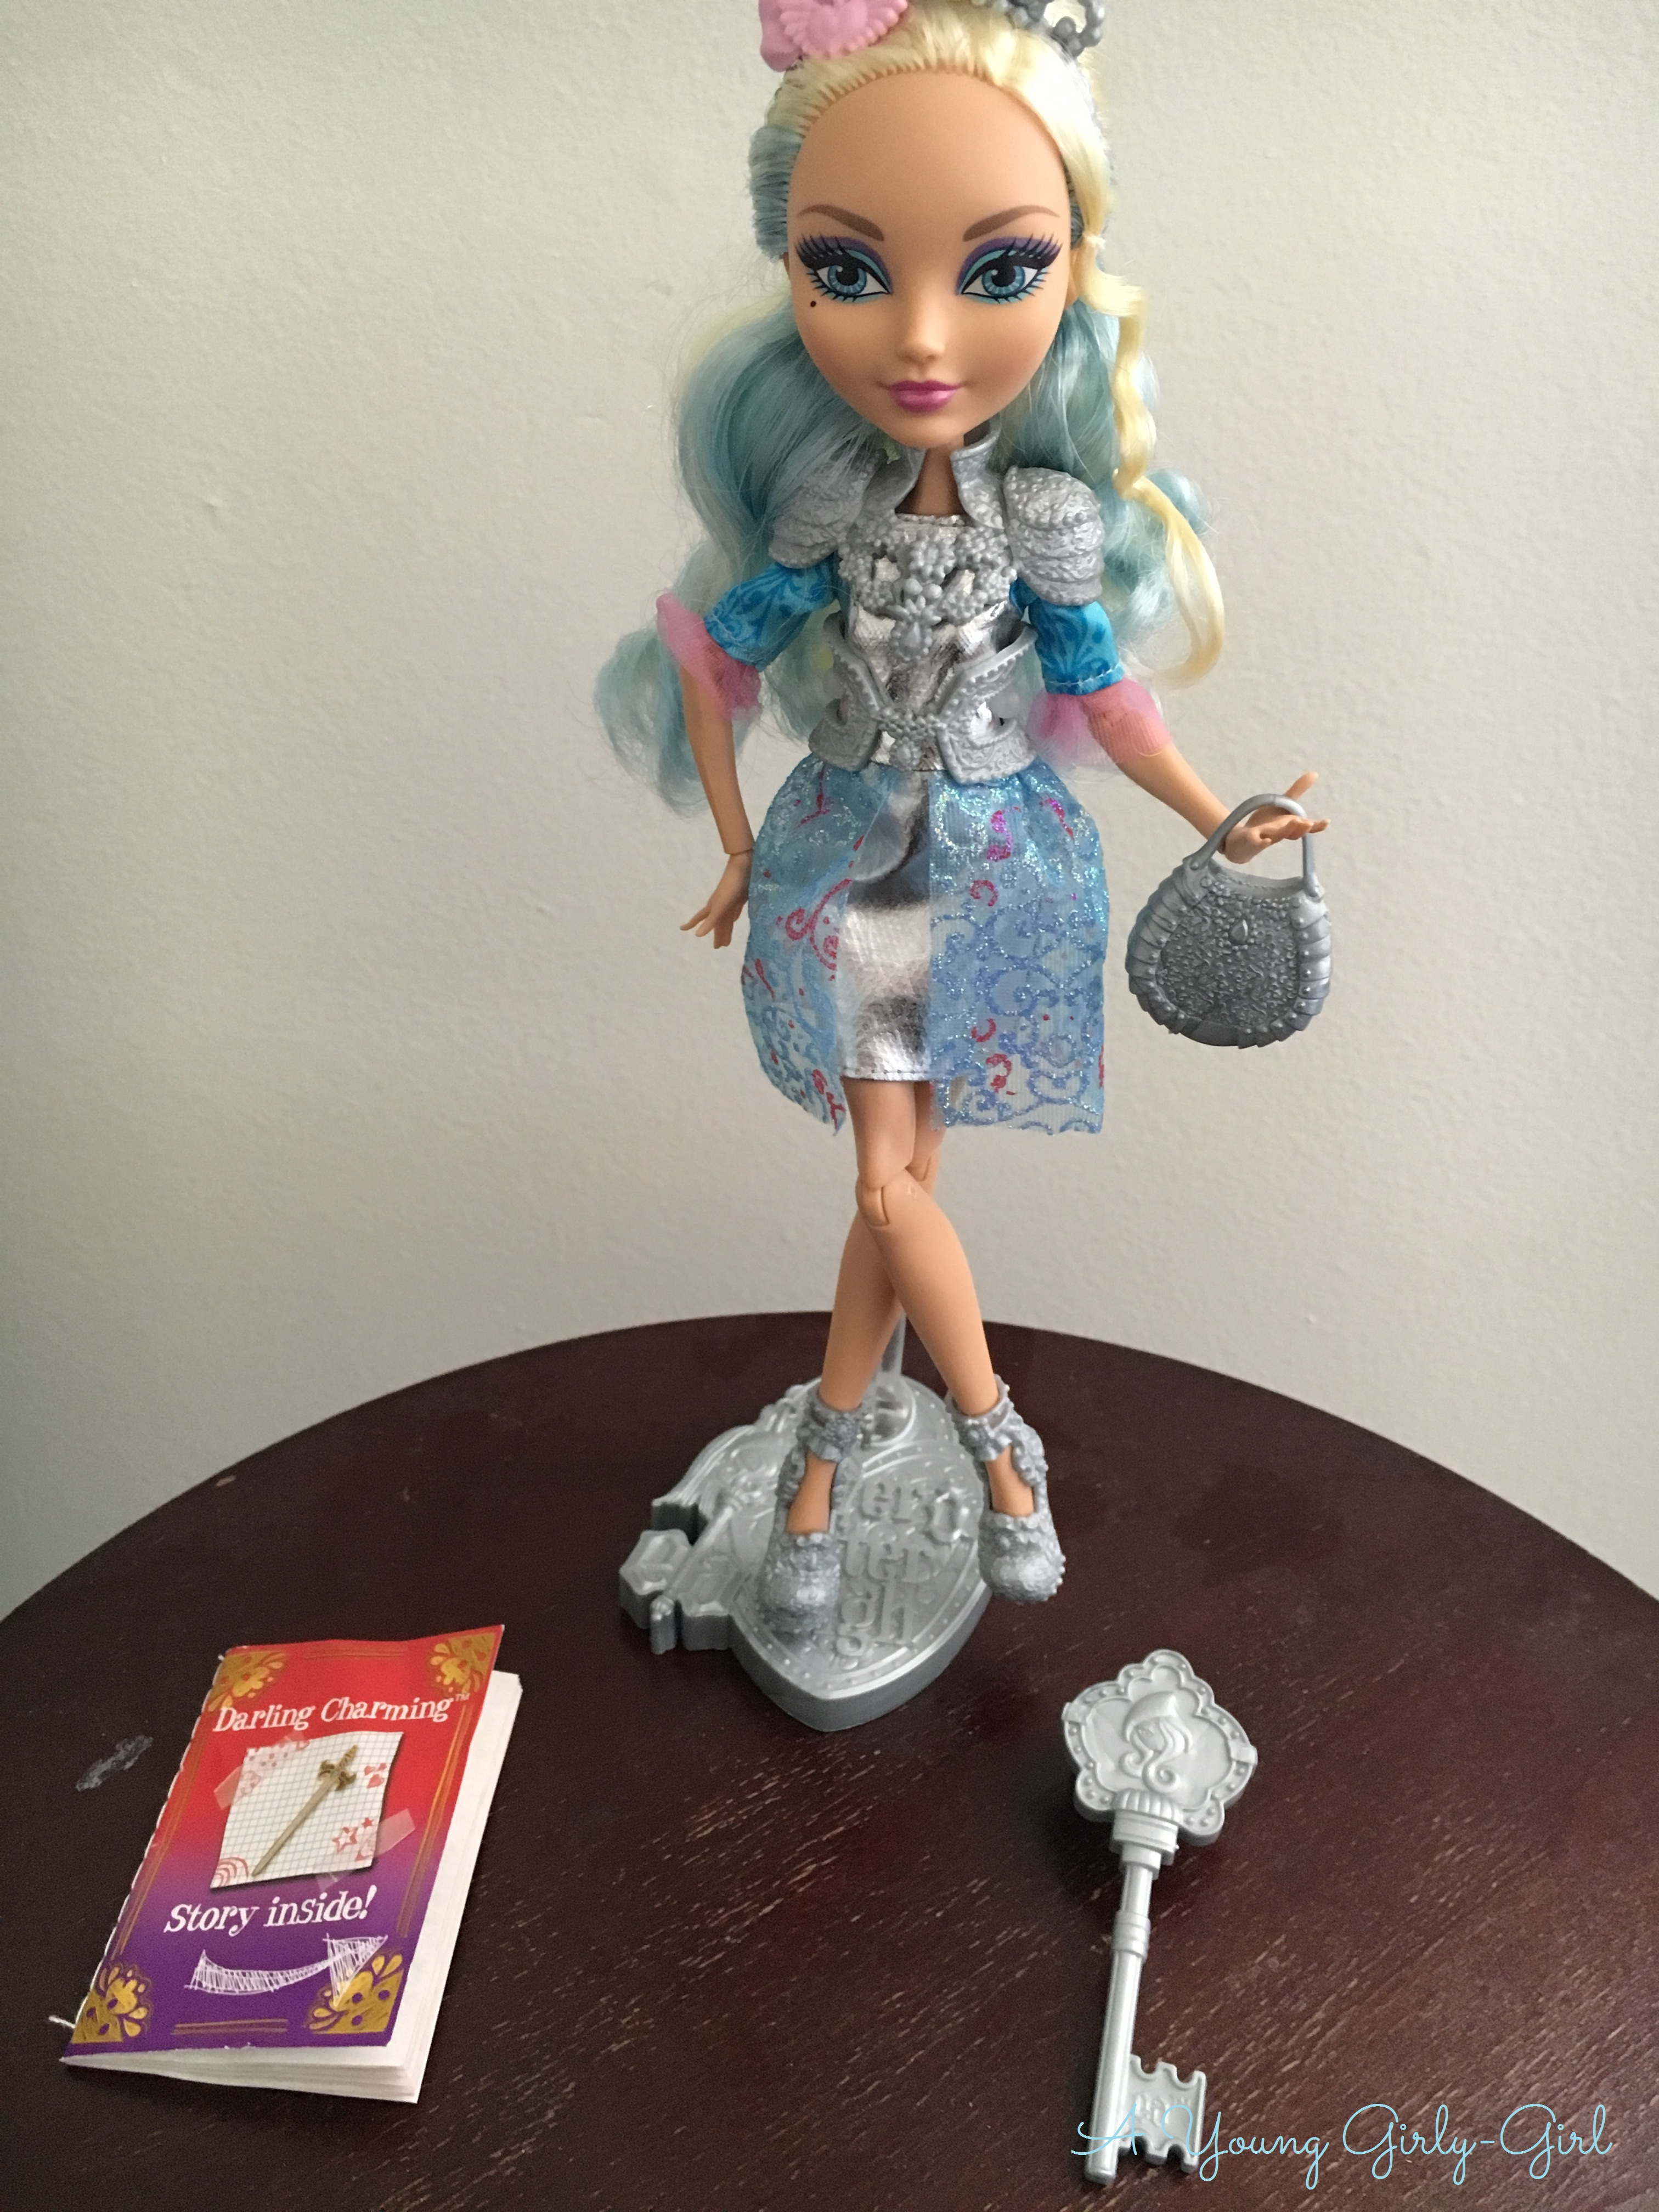 Ever After High Darling Charming Doll Review | A Young Girly